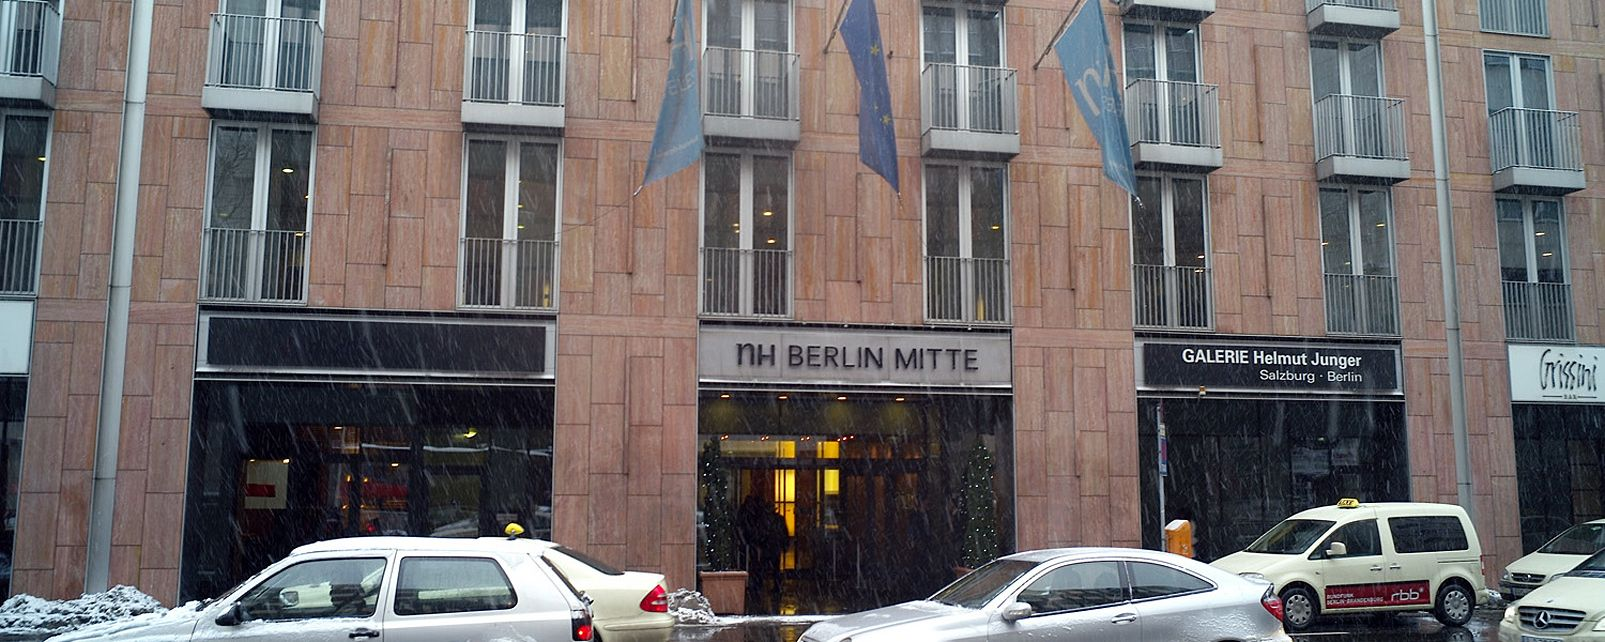 Nh Hotel Berlin Mitte Booking